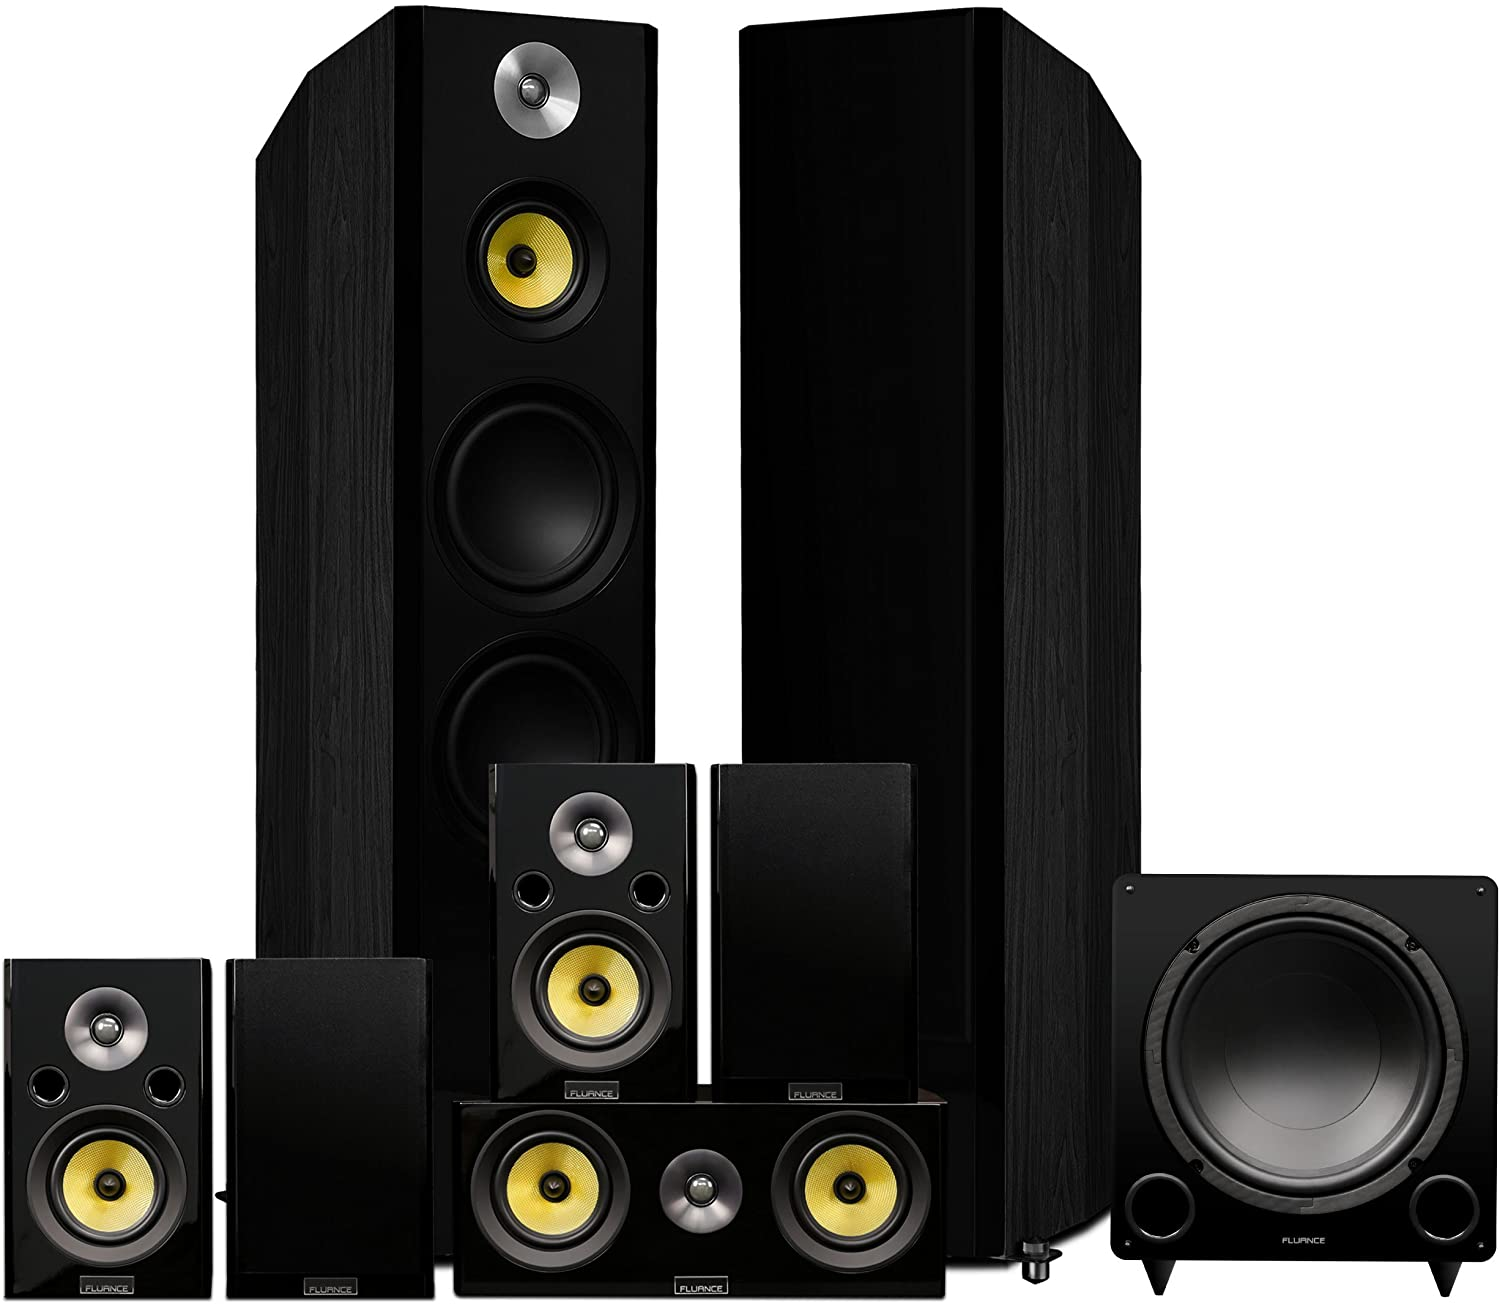 Fluance Signature Series Surround Sound Home Theater 7.1 Channel Speaker System Including Three-Way Floorstanding, Center, Surrounds & Rear Surrounds, and DB12 Subwoofer - Black Ash (HF71BR)